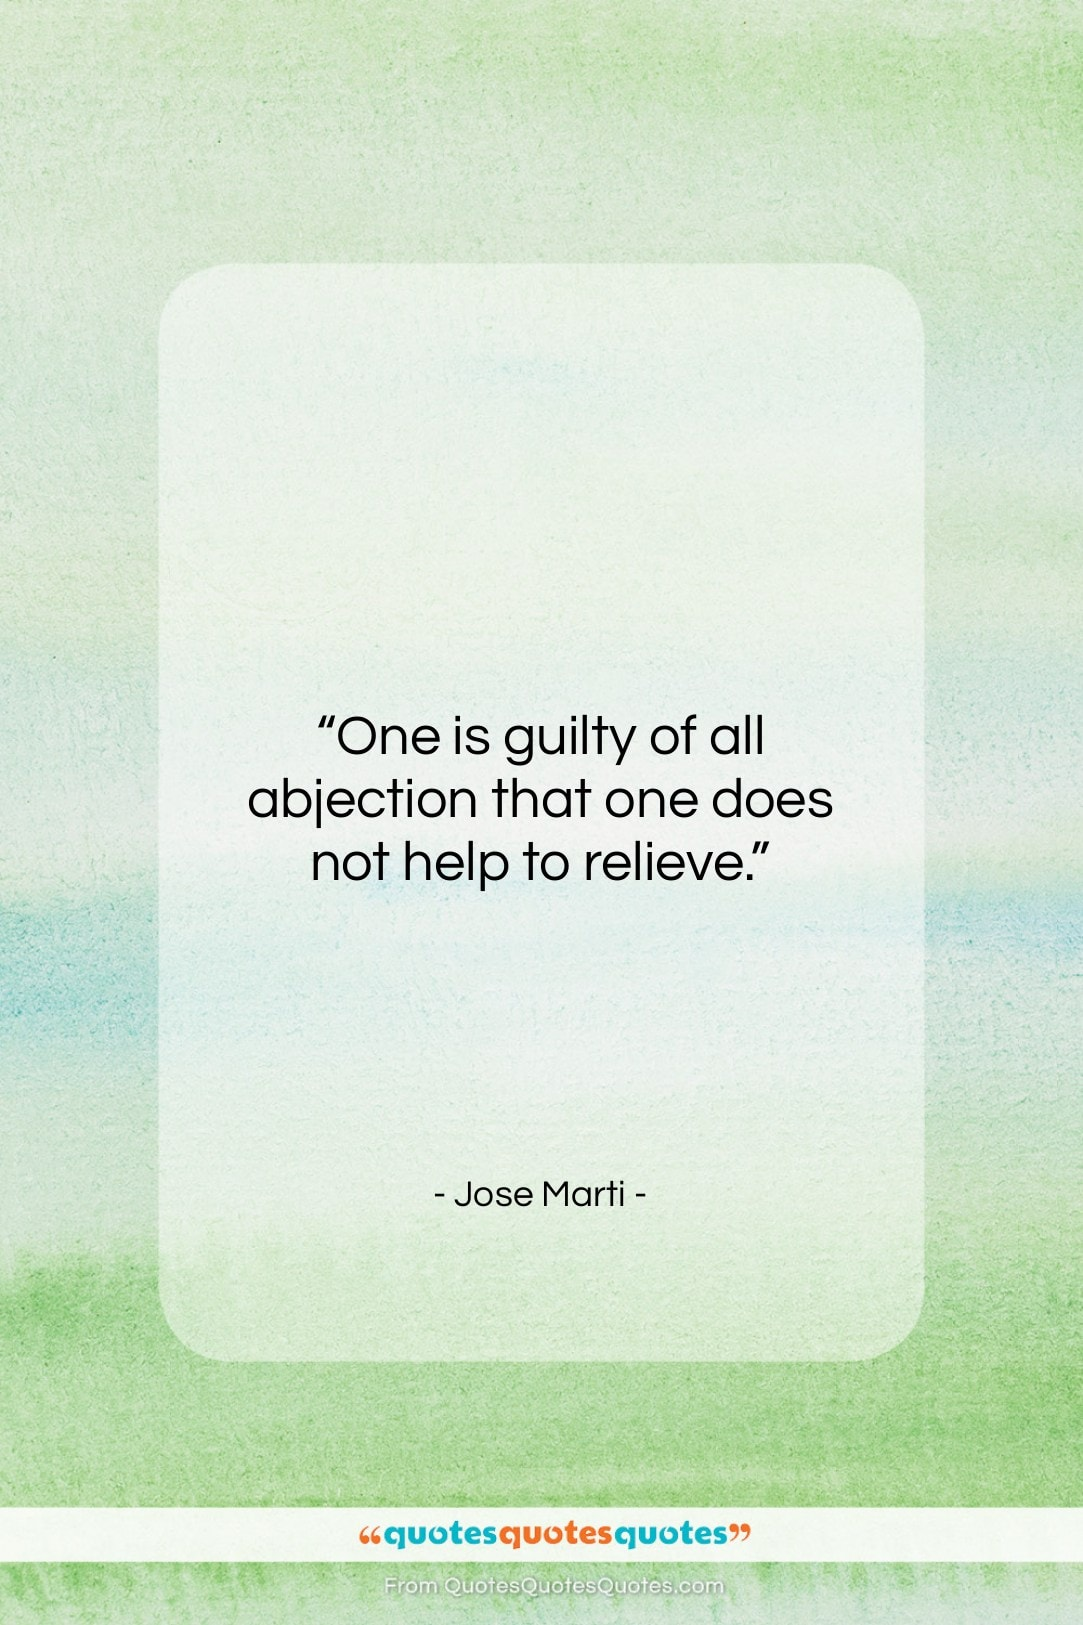 """Jose Marti quote: """"One is guilty of all abjection that…""""- at QuotesQuotesQuotes.com"""